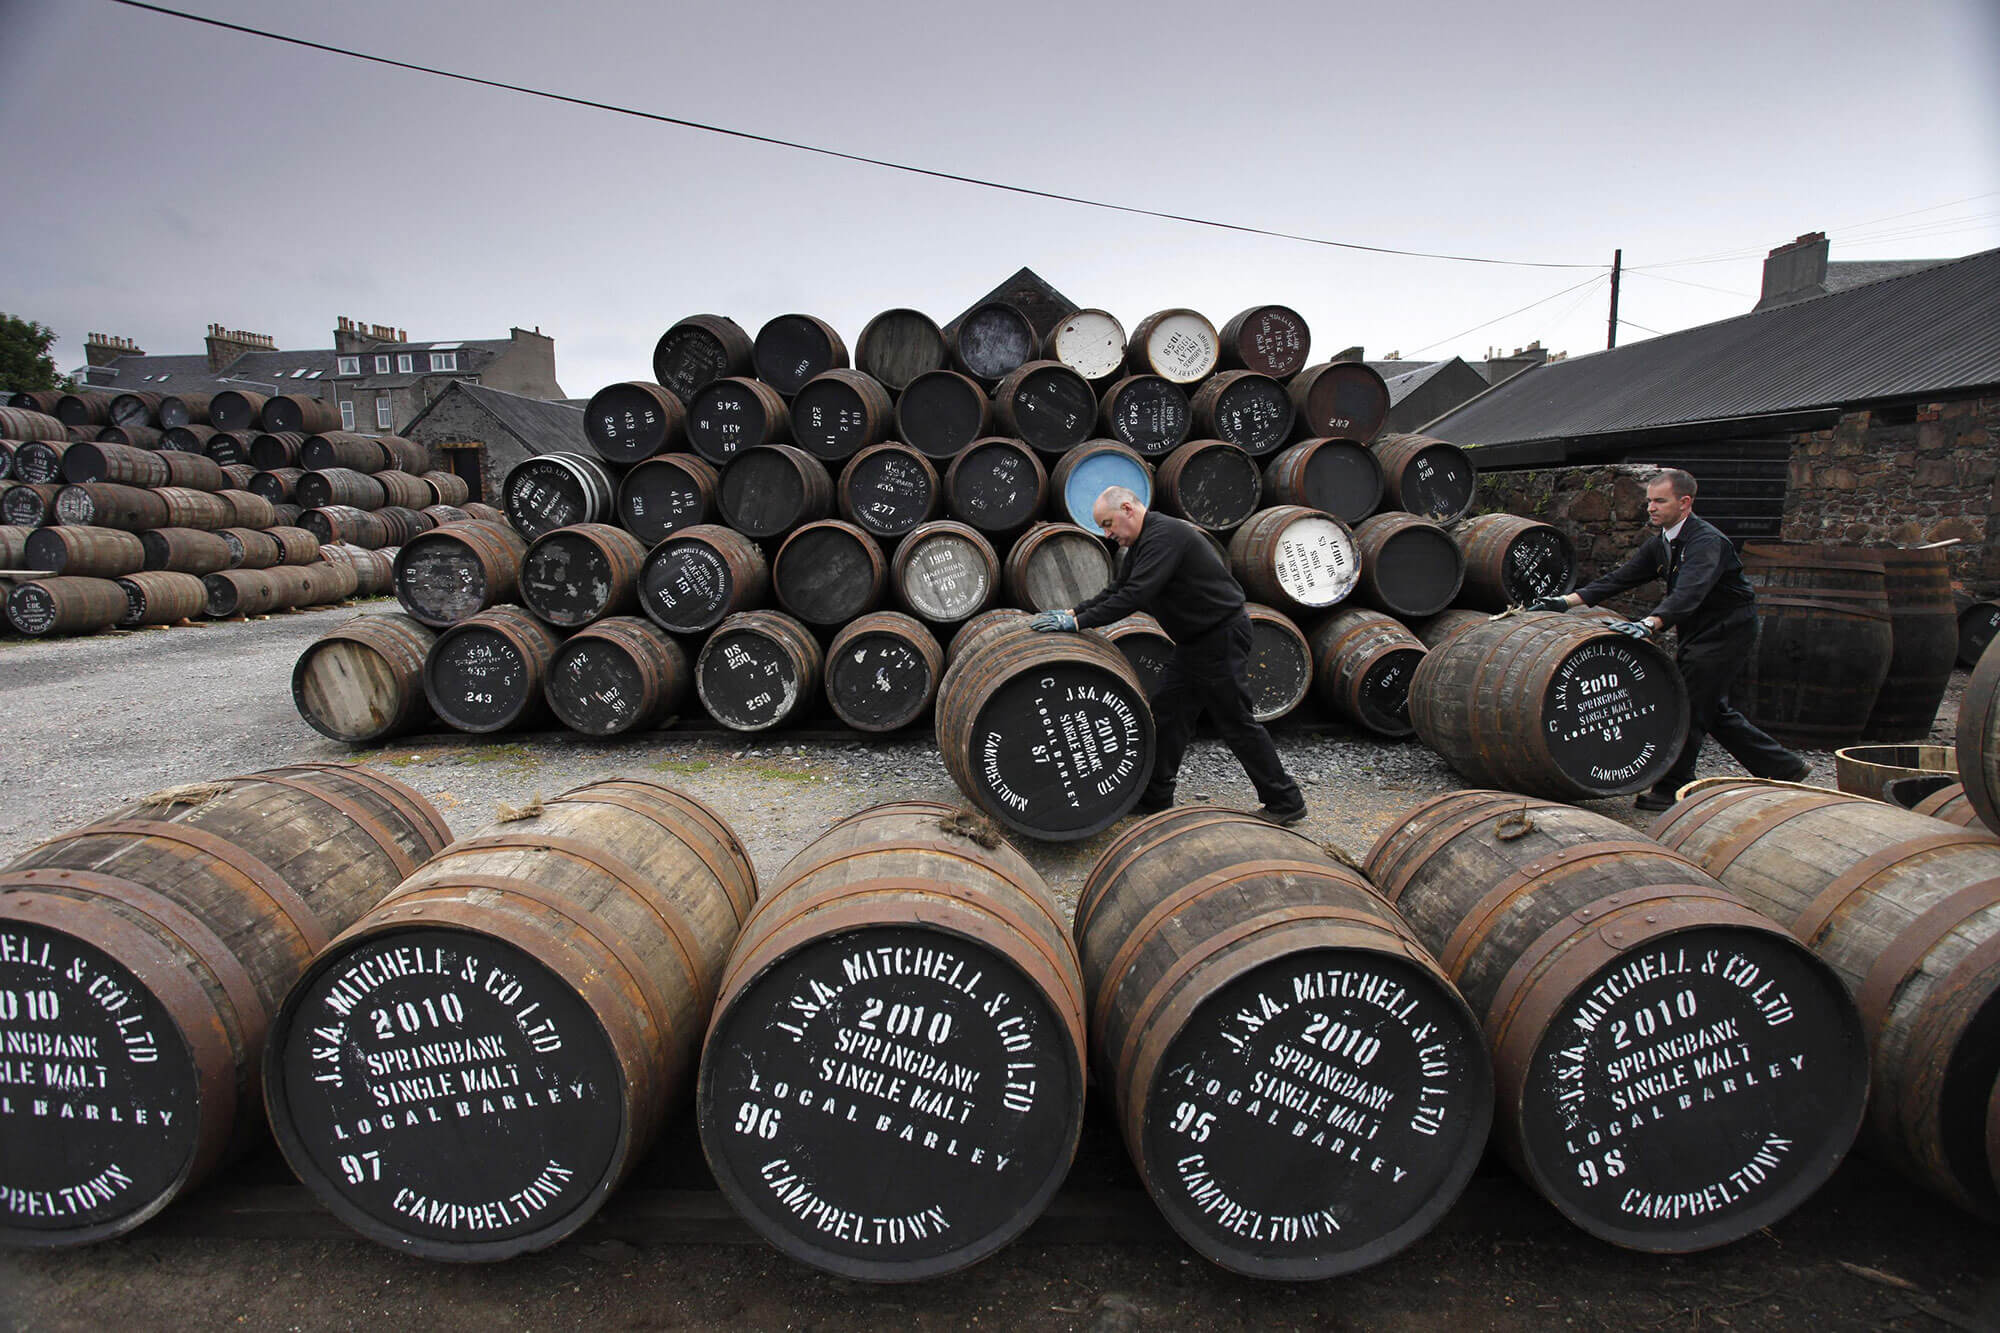 Barrels of whisky at a distilery